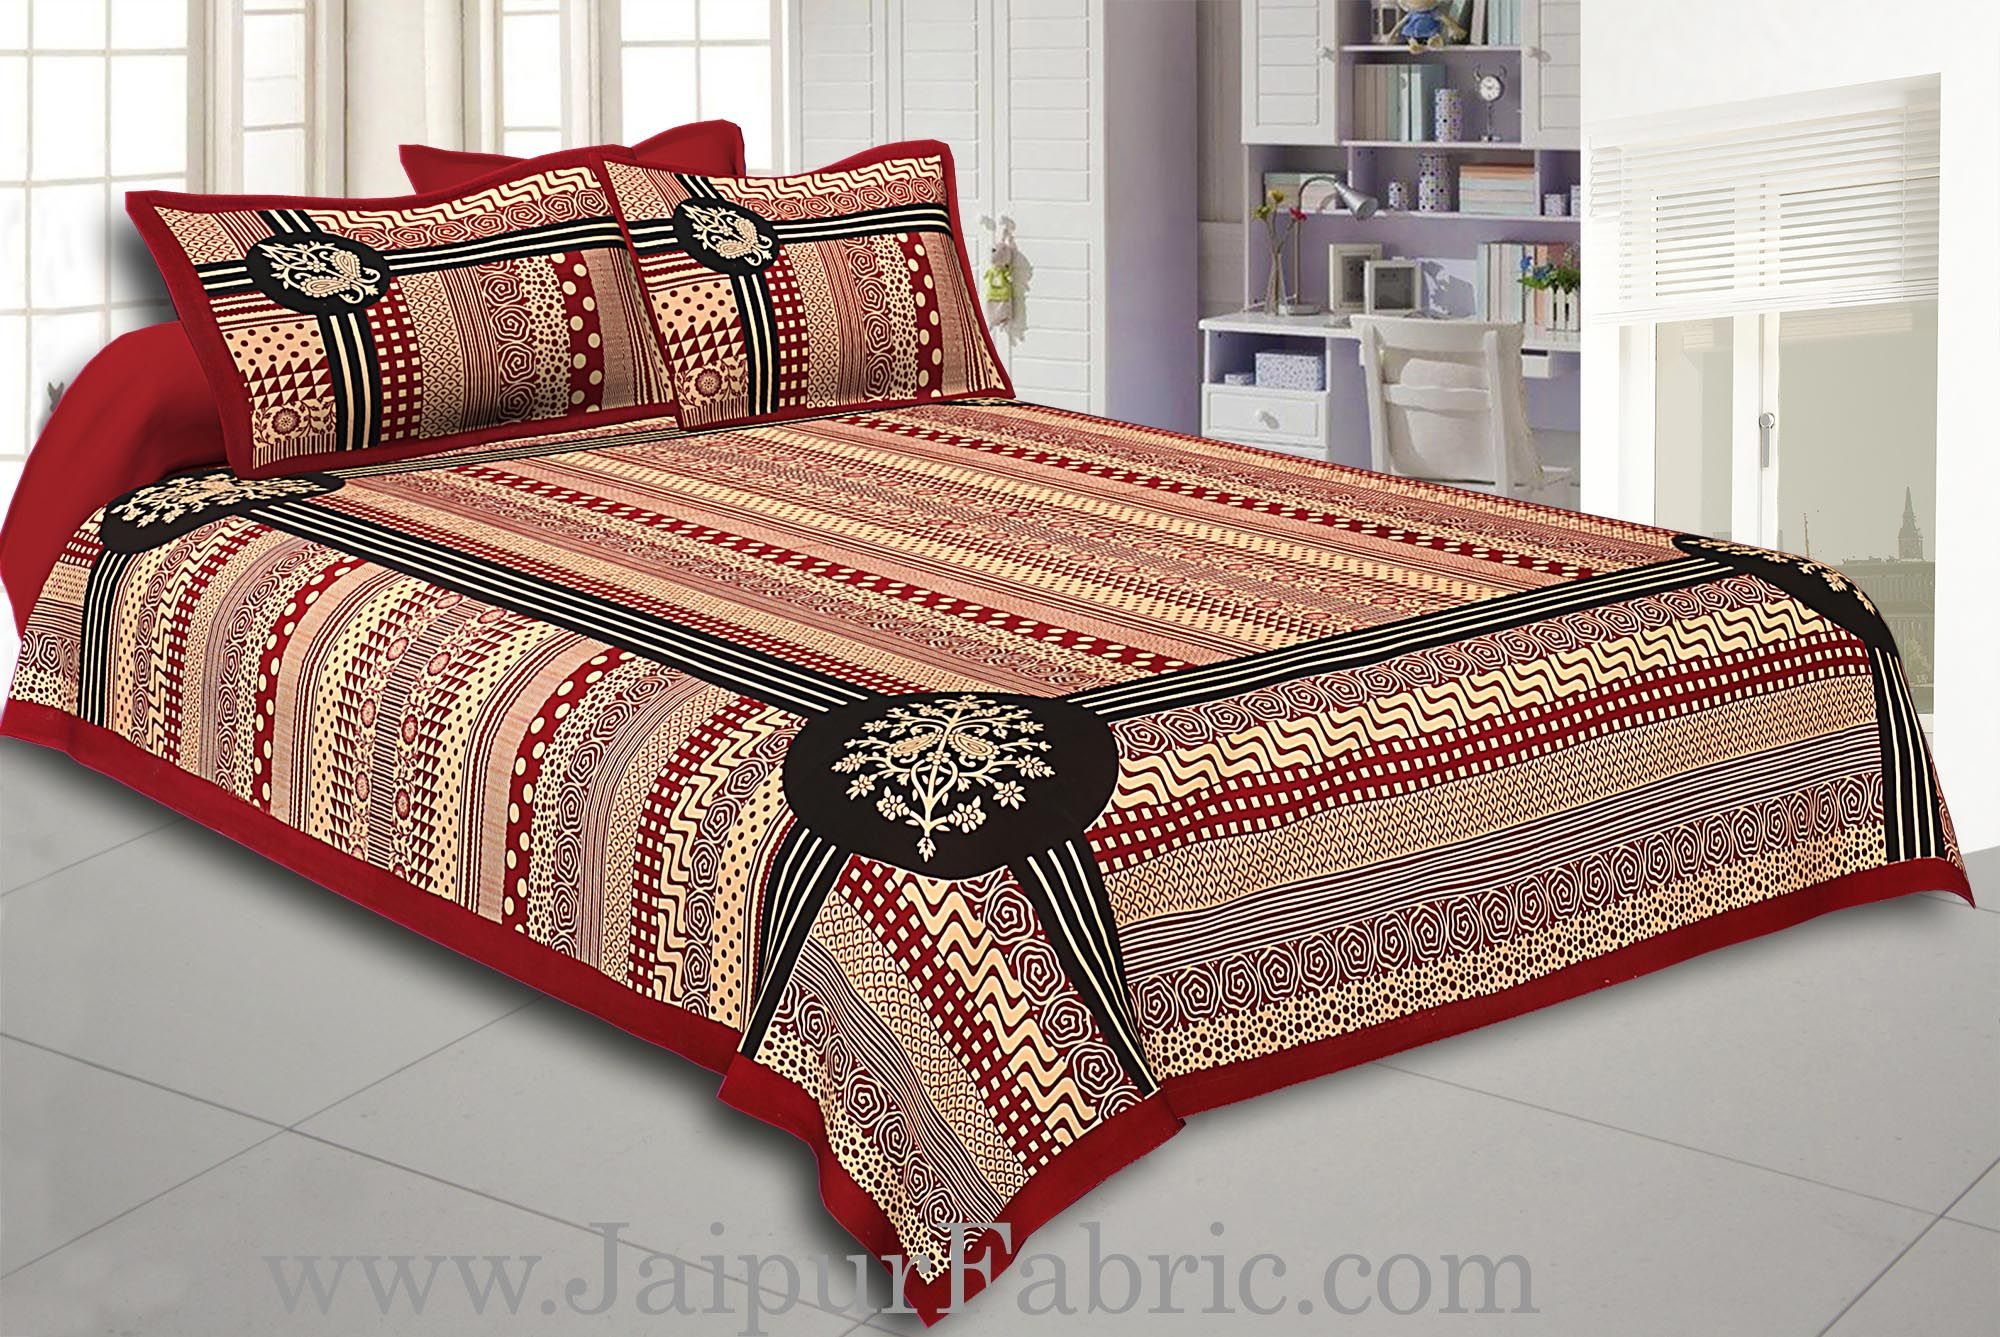 Maroon Border Cream Base  Rectangle Pattern With Black Lining In  Bagru Print Cotton Double Bedsheet